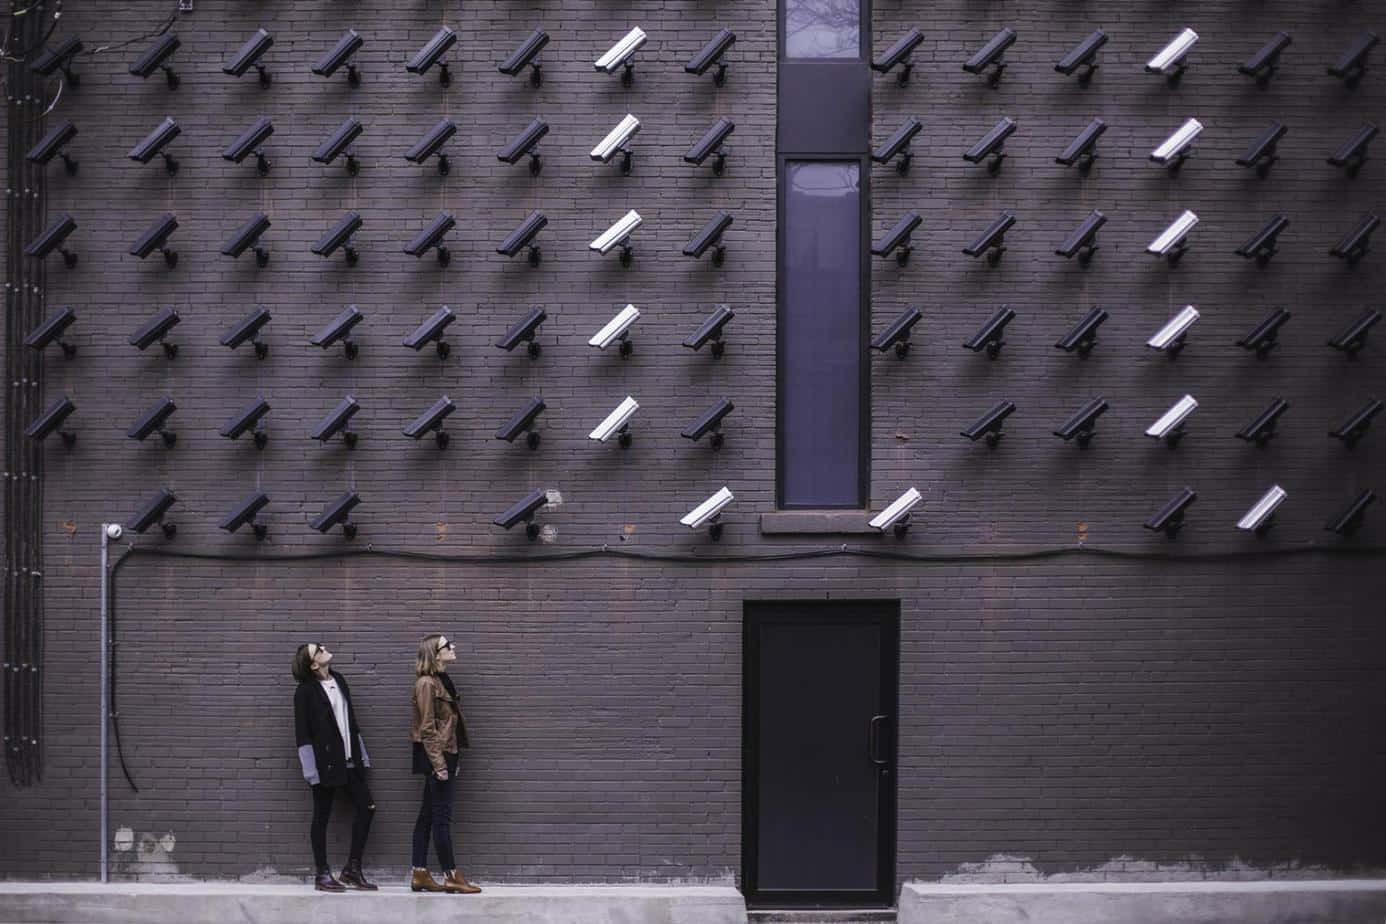 wall full of cameras with two girls watching